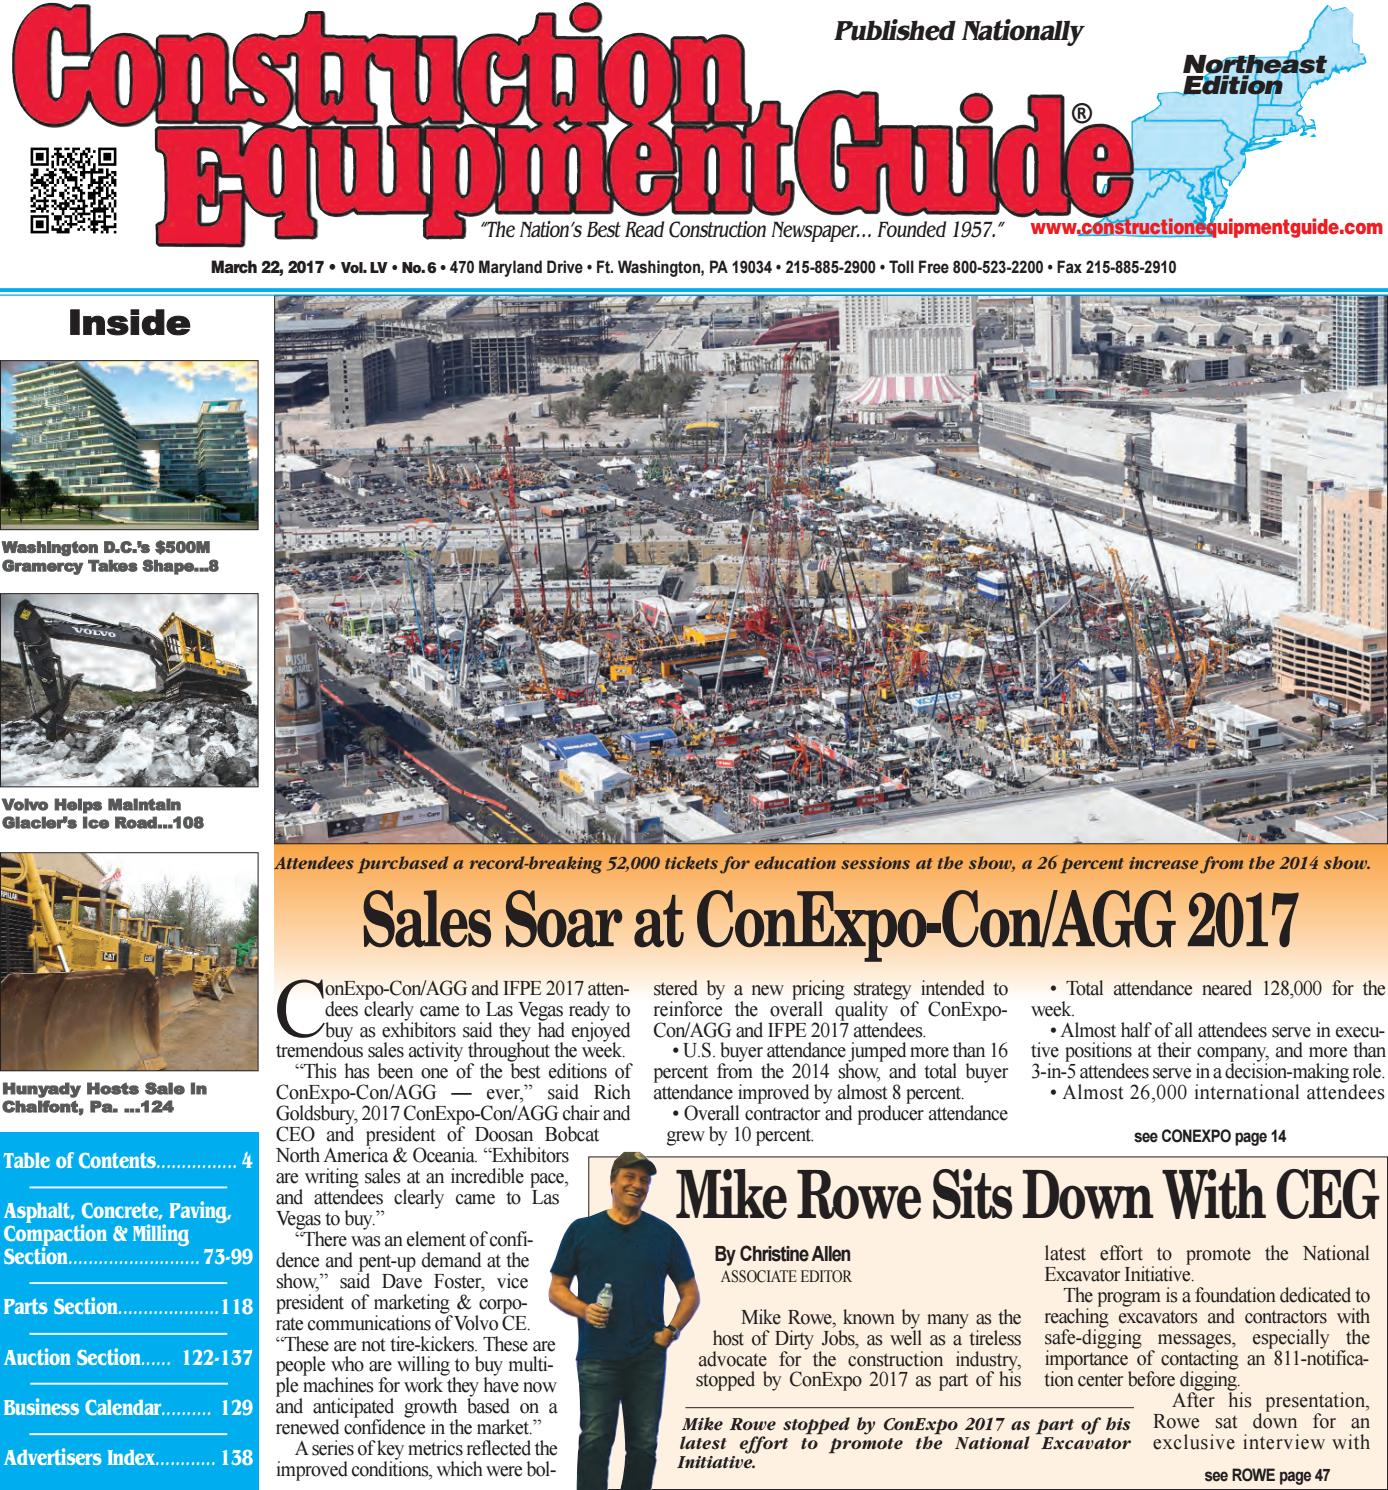 Northeast 6 March 22, 2017 by Construction Equipment Guide - issuu 0612775b1ef9